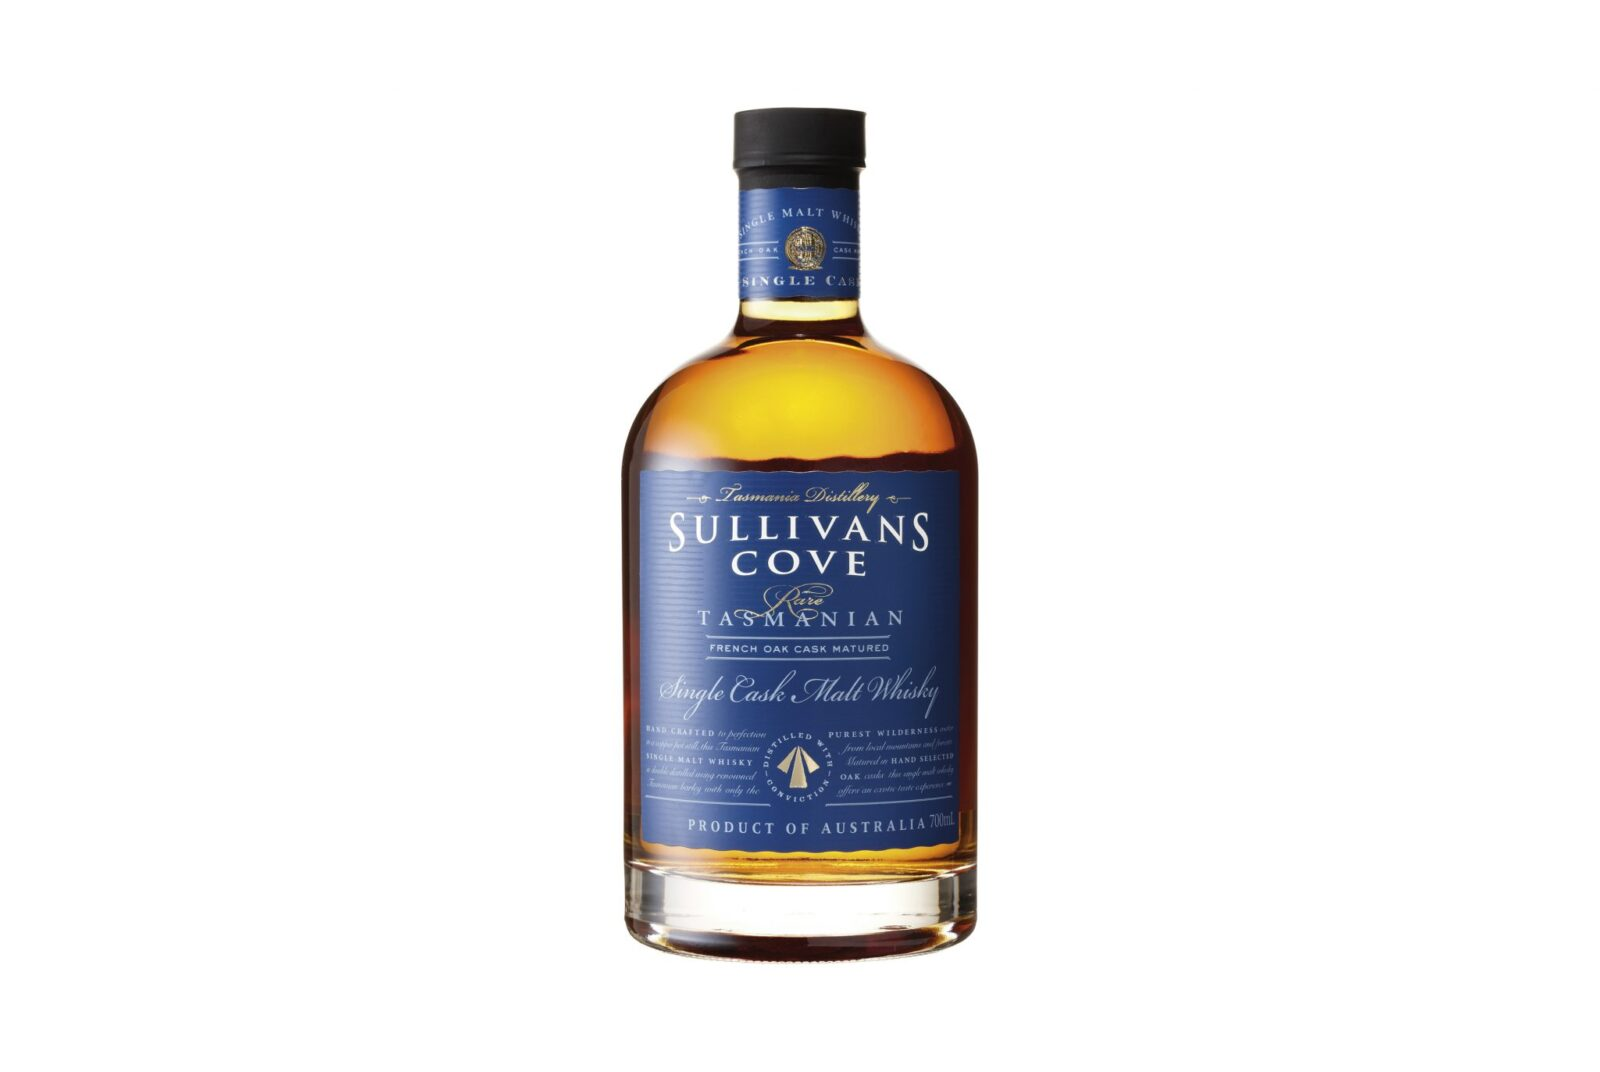 Sullivans Cove French Oak Cask Single Malt 1600x1072 - Sullivans Cove French Oak Cask Single Malt